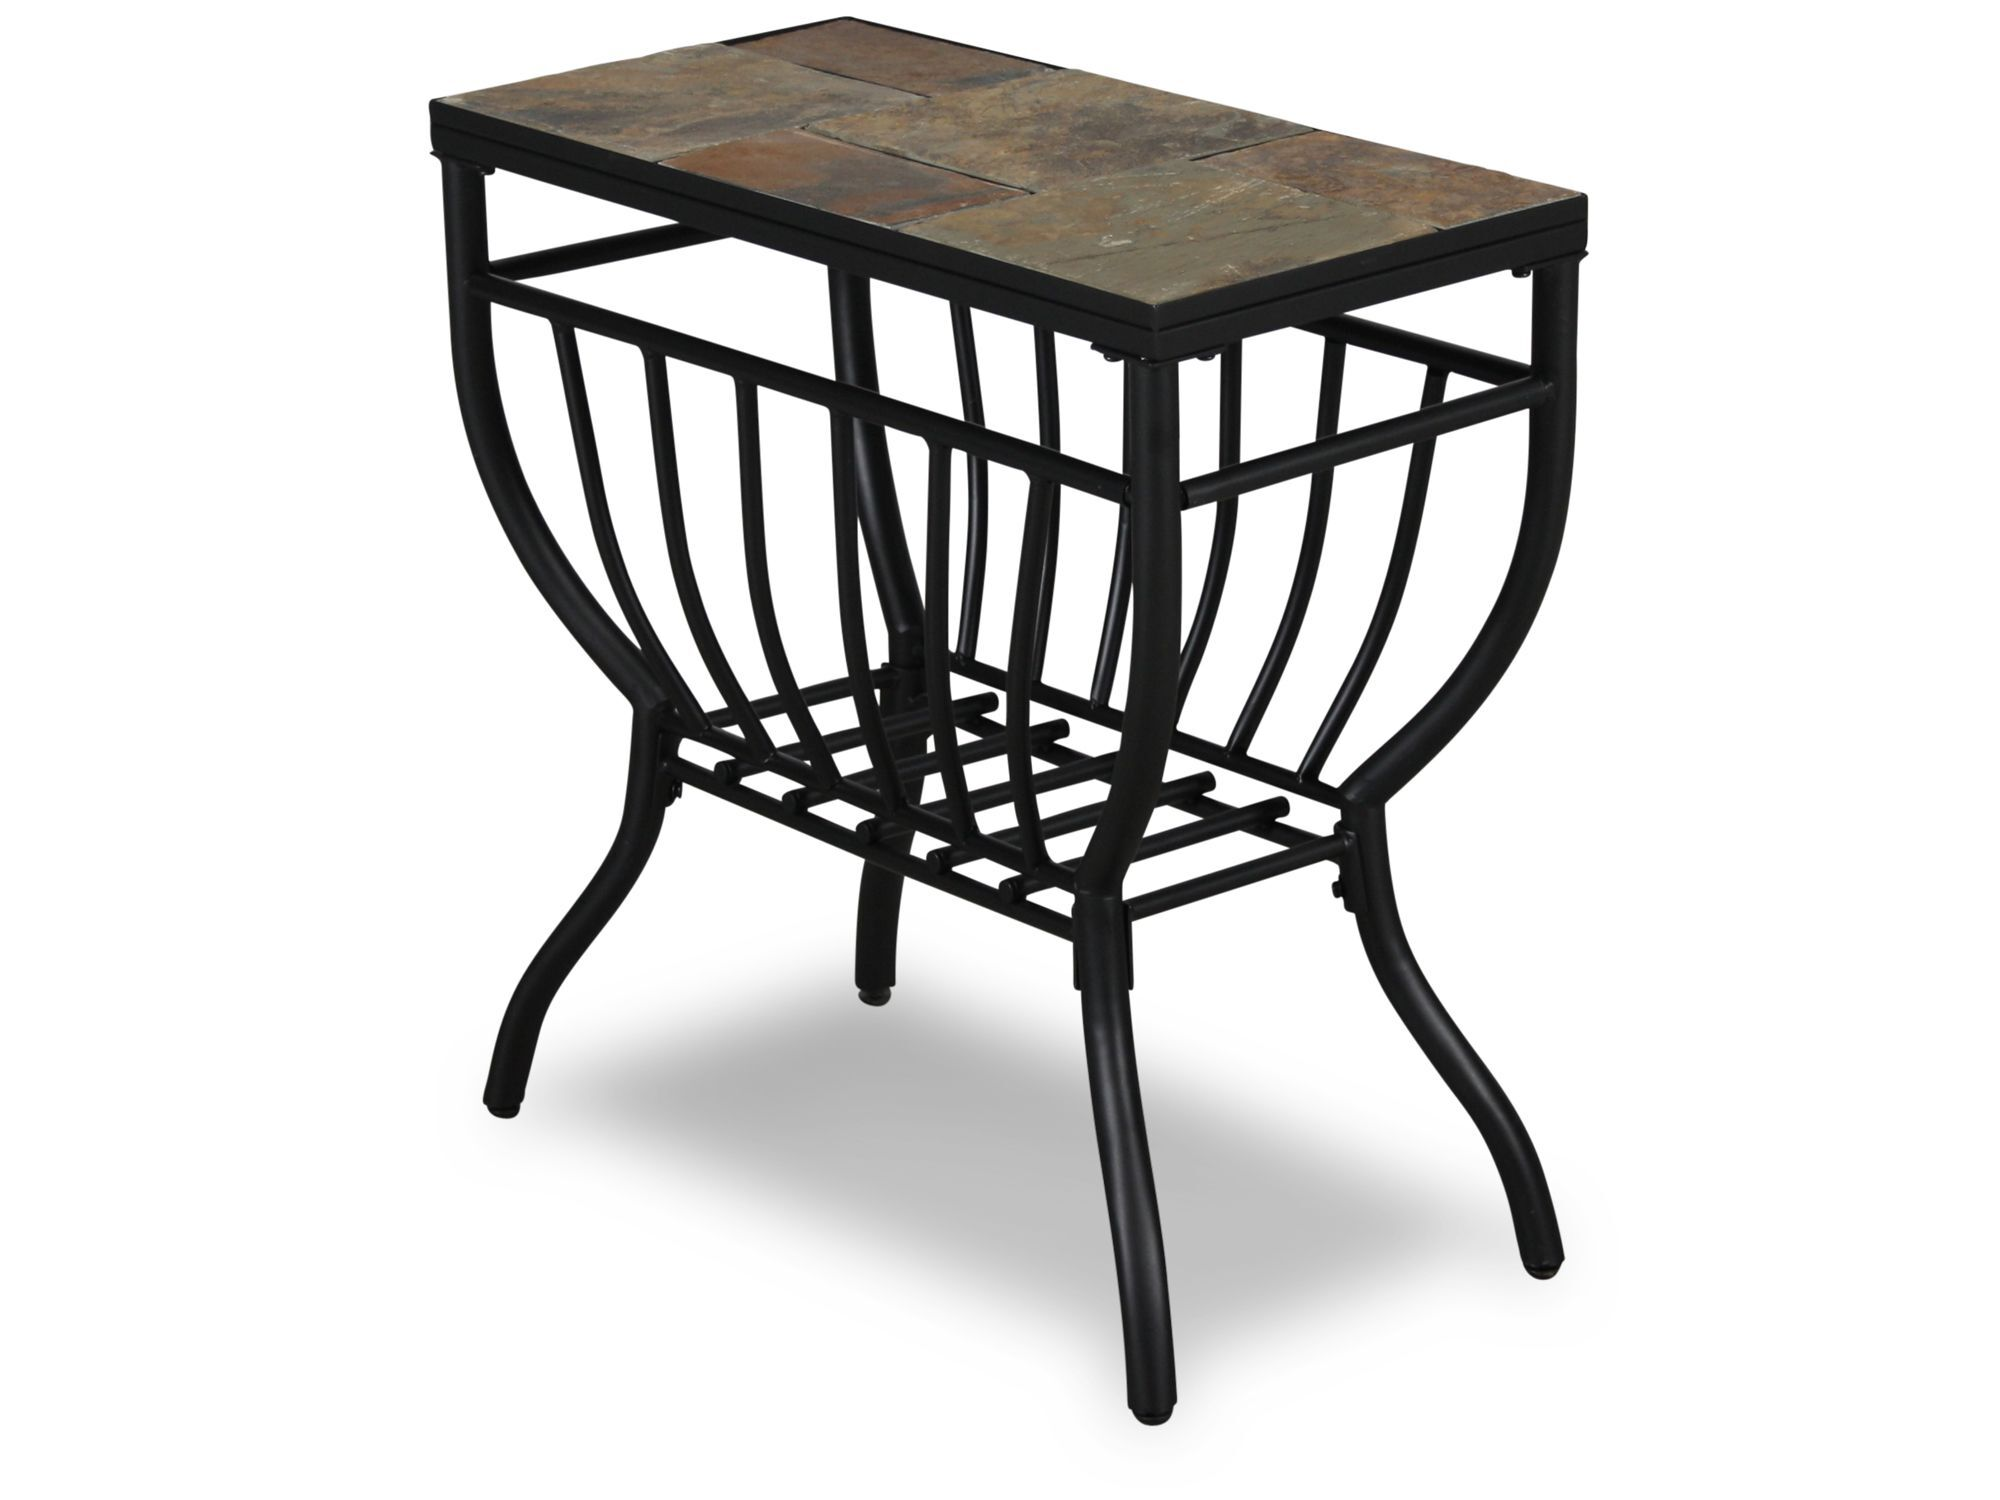 Modern Chairside Table Rectangular Contemporary Chairside Table In Gunmetal